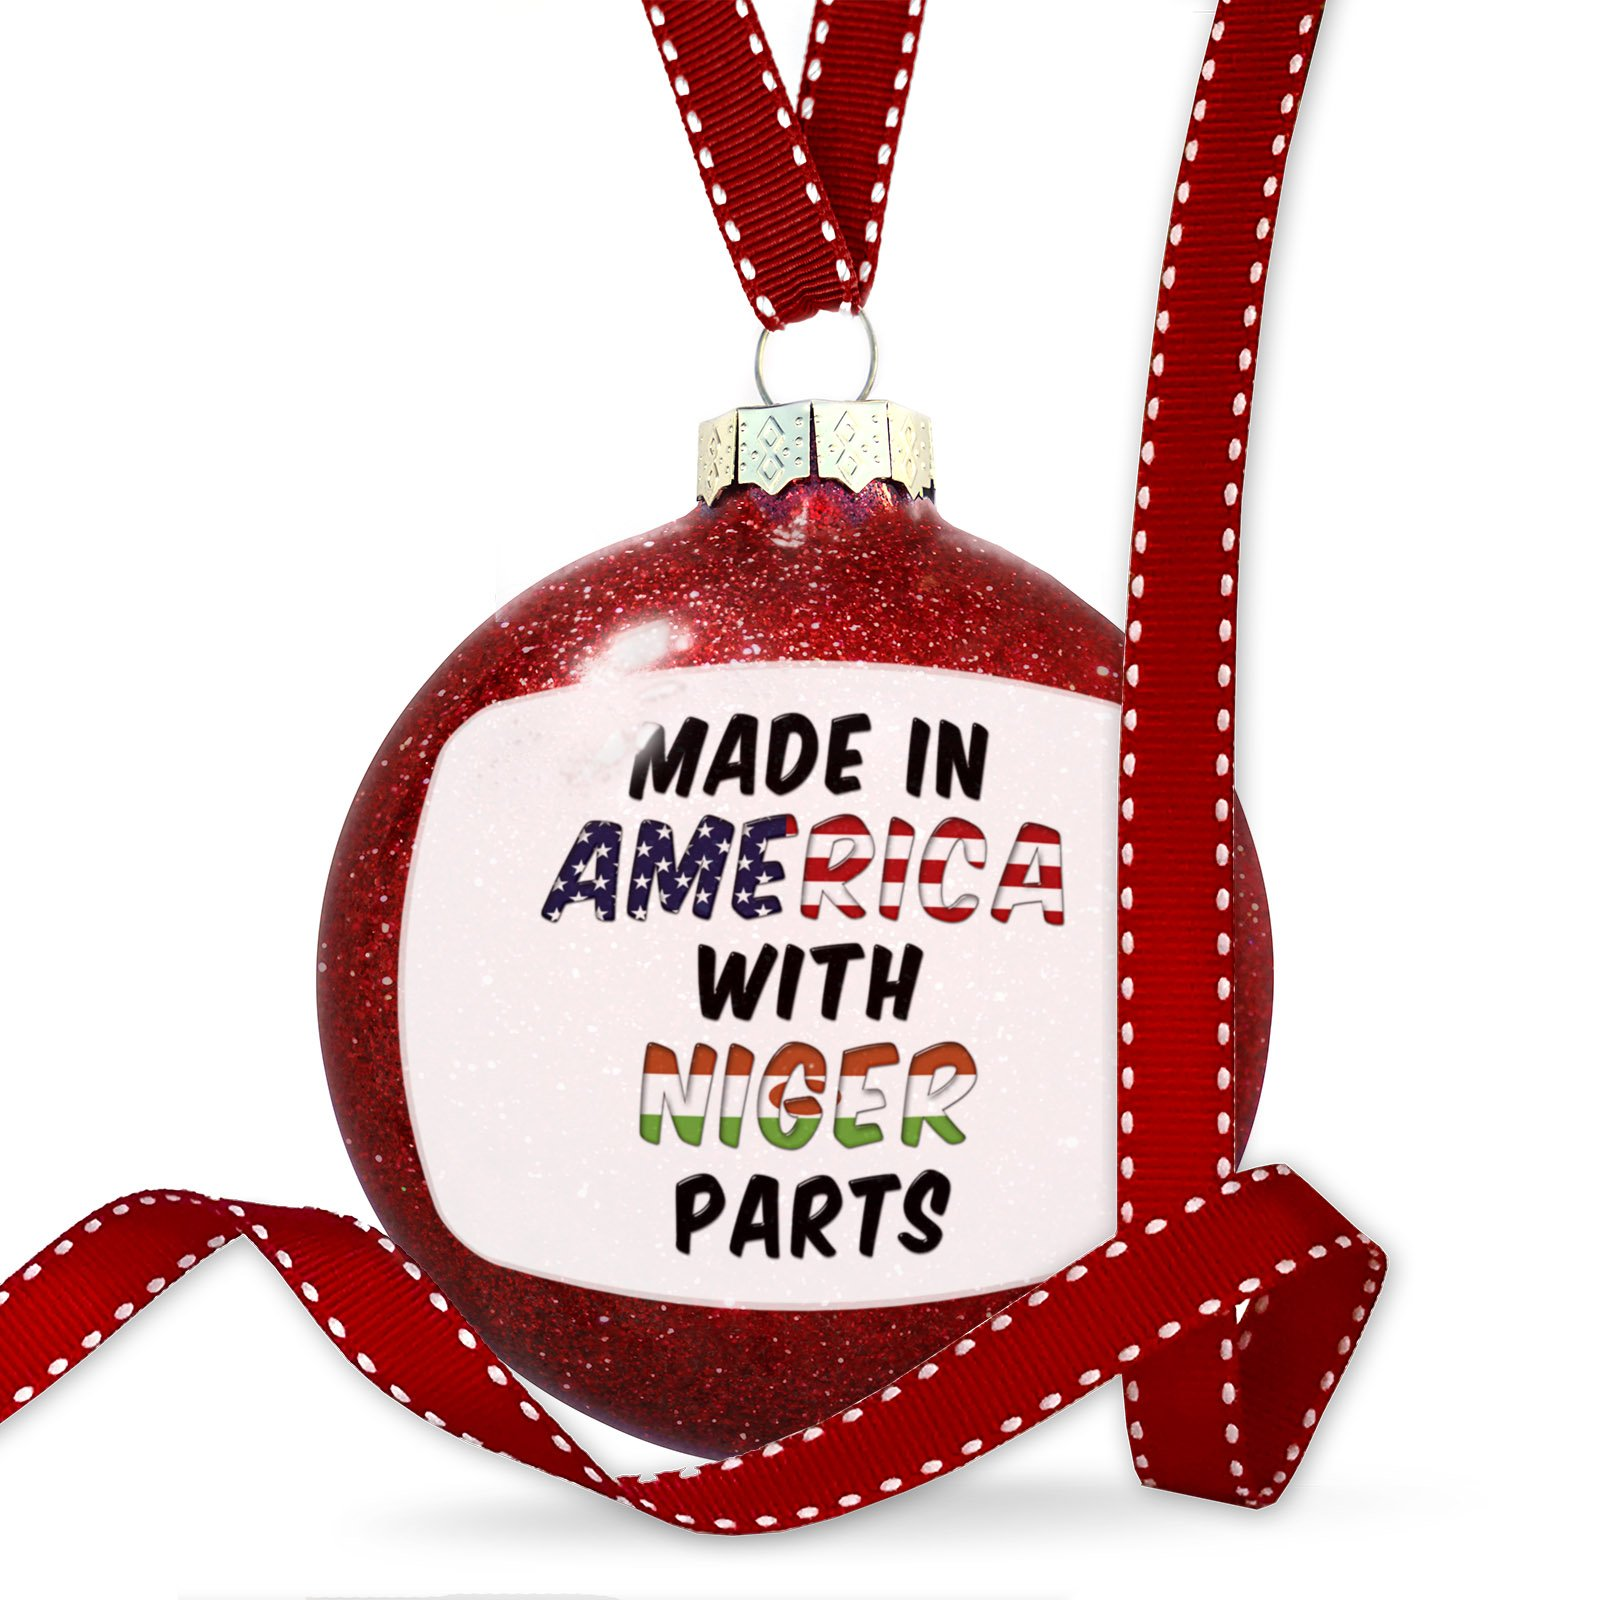 Christmas Decoration Made in America with Parts from Niger Ornament